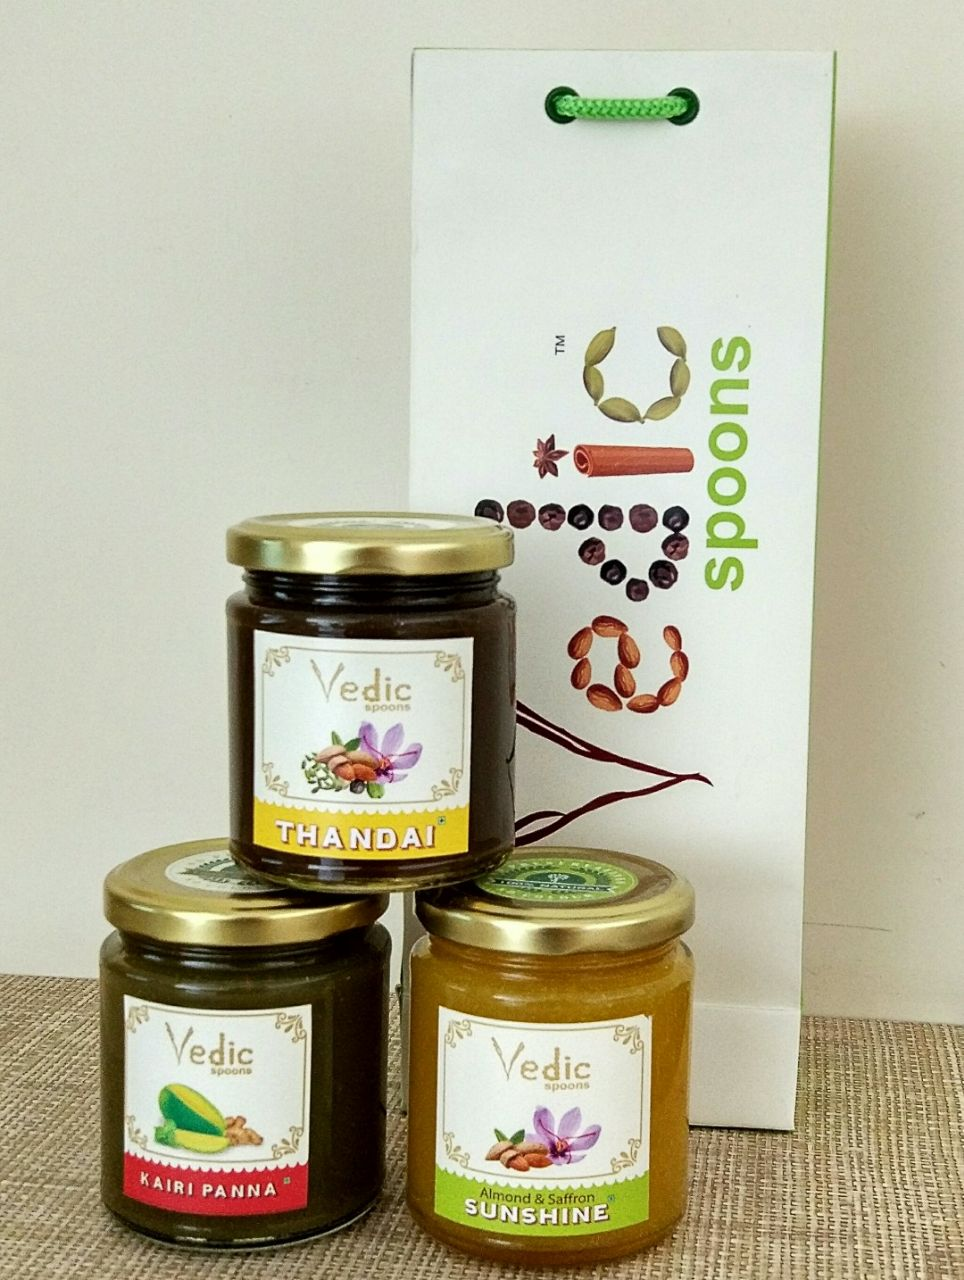 Trial Pack of Almond Saffron, Thandai & Kairi Panna with Giftable Carry Bag - Vedic Spoons